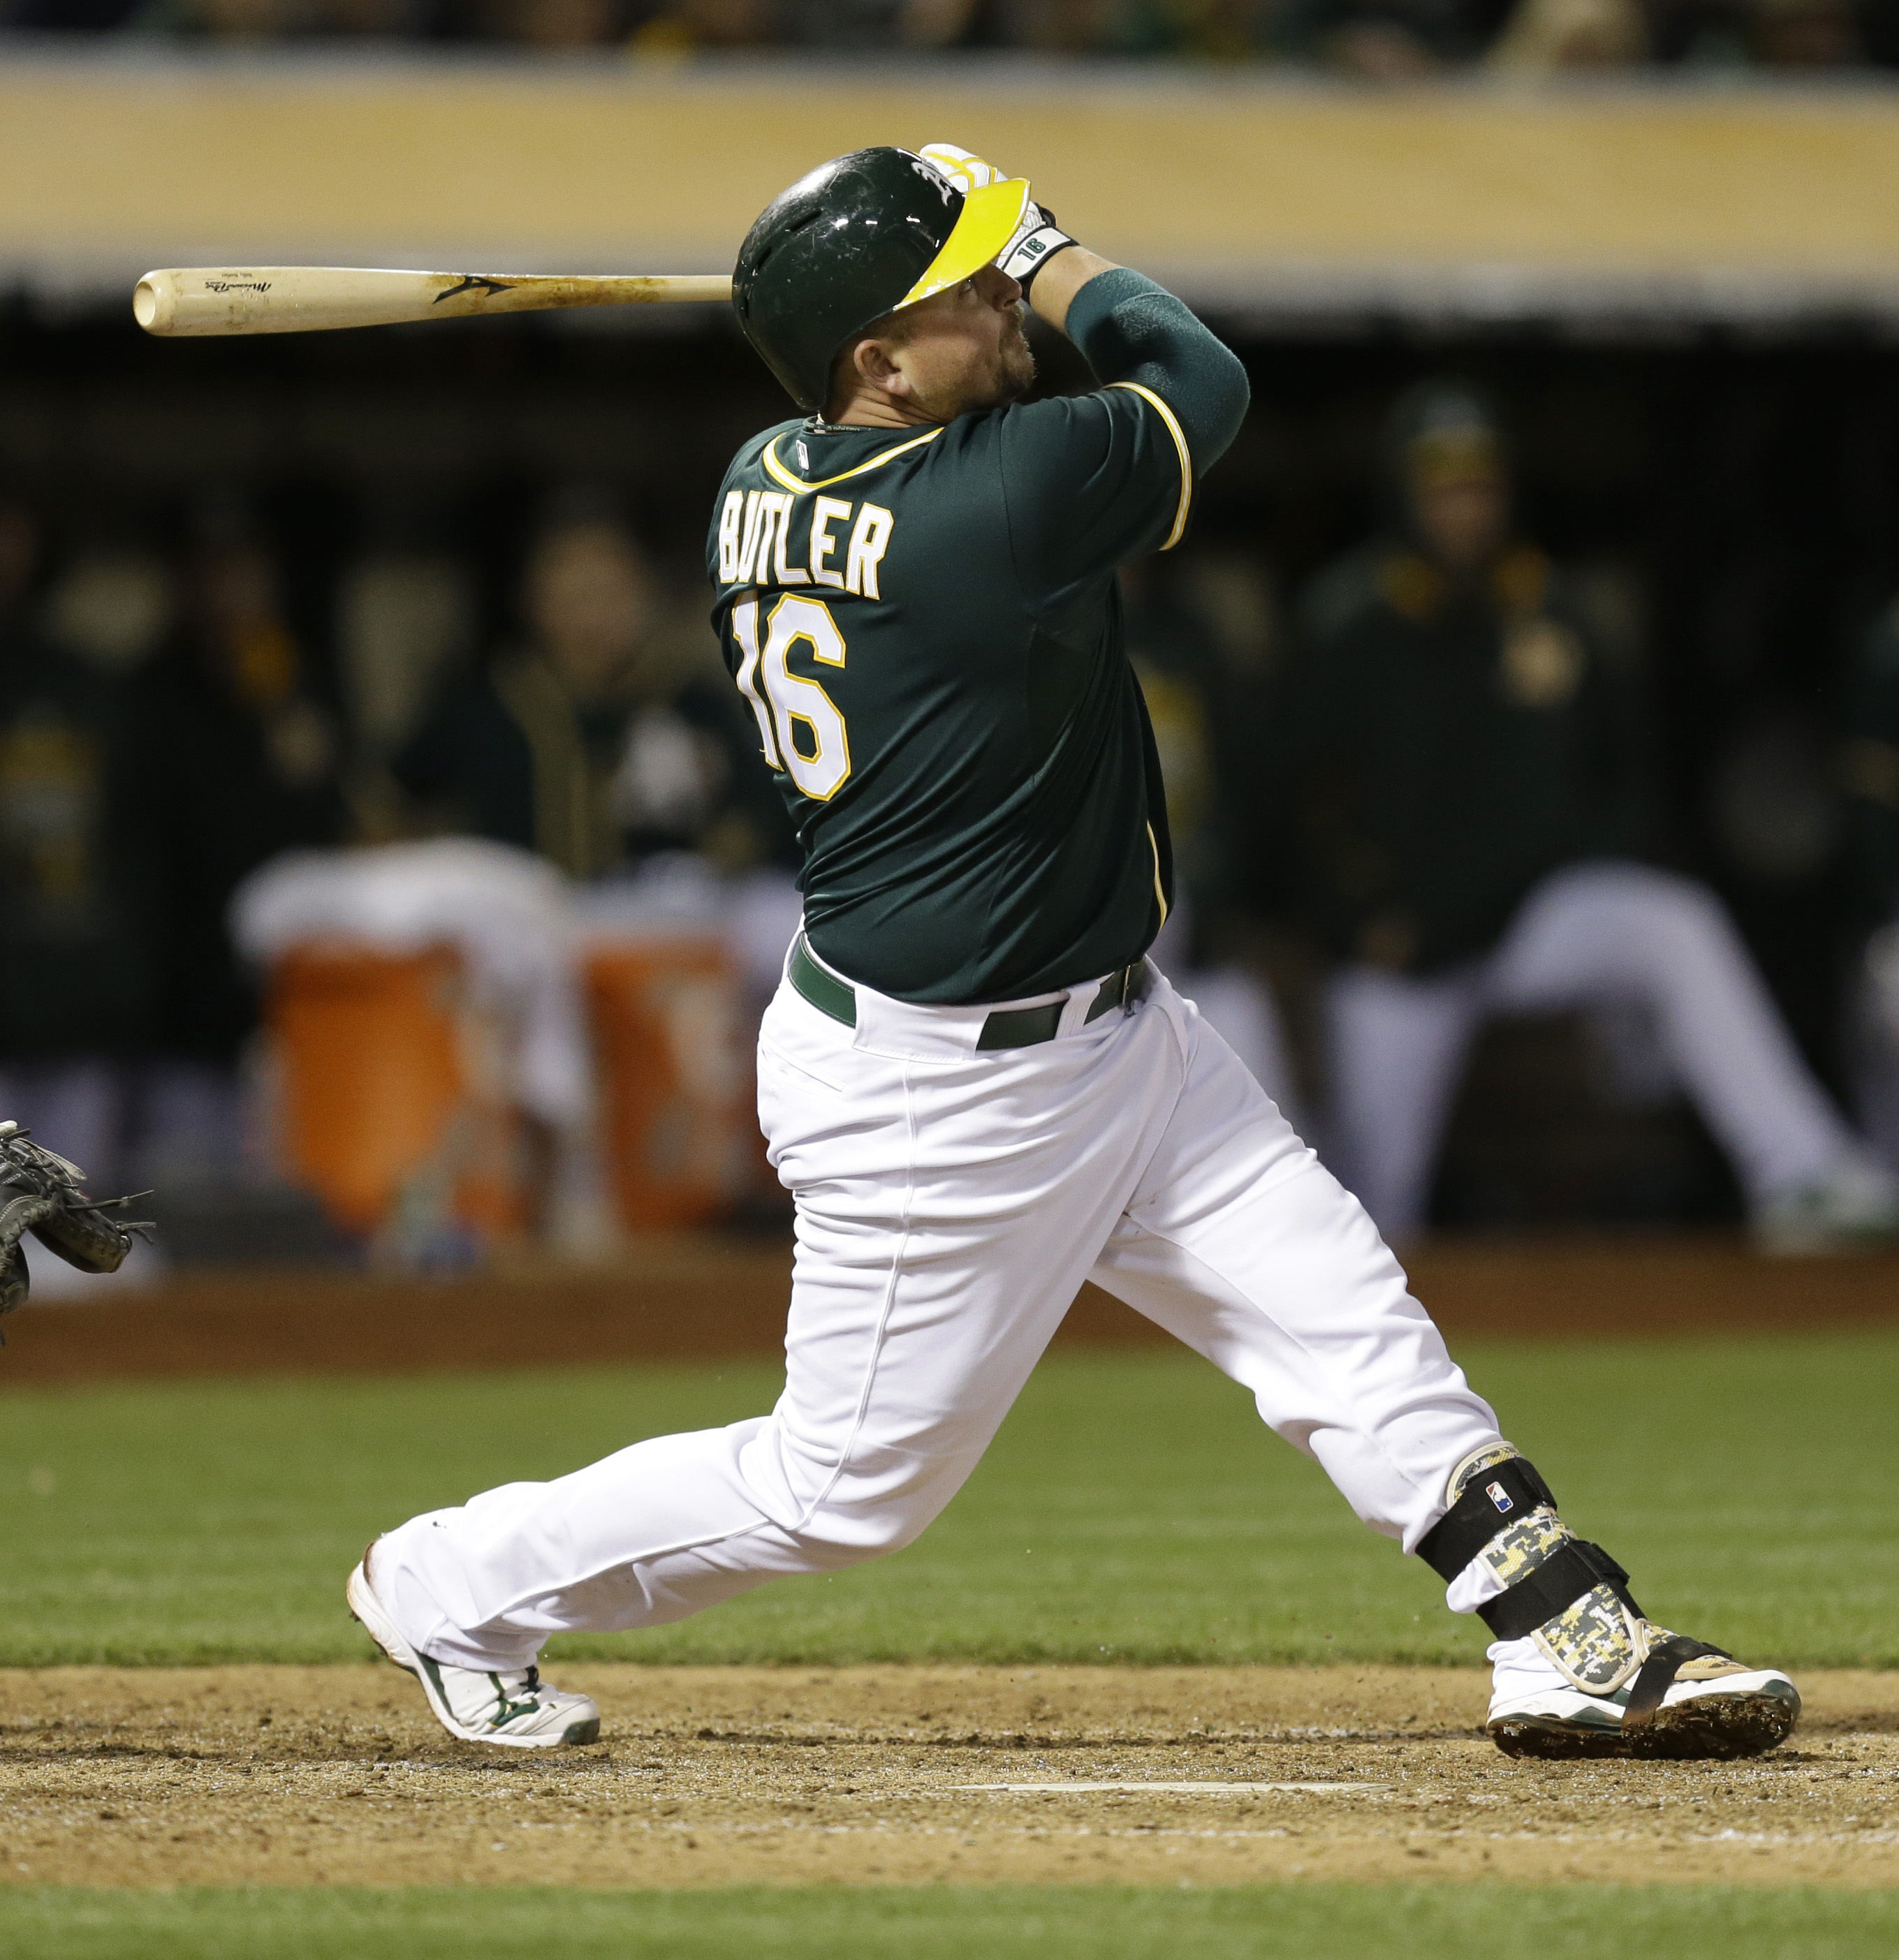 Oakland Athletics' Billy Butler swings for an RBI sacrifice fly off New York Yankees' David Carpenter during the seventh inning of a baseball game Thursday, May 28, 2015, in Oakland, Calif. (AP Photo/Ben Margot)